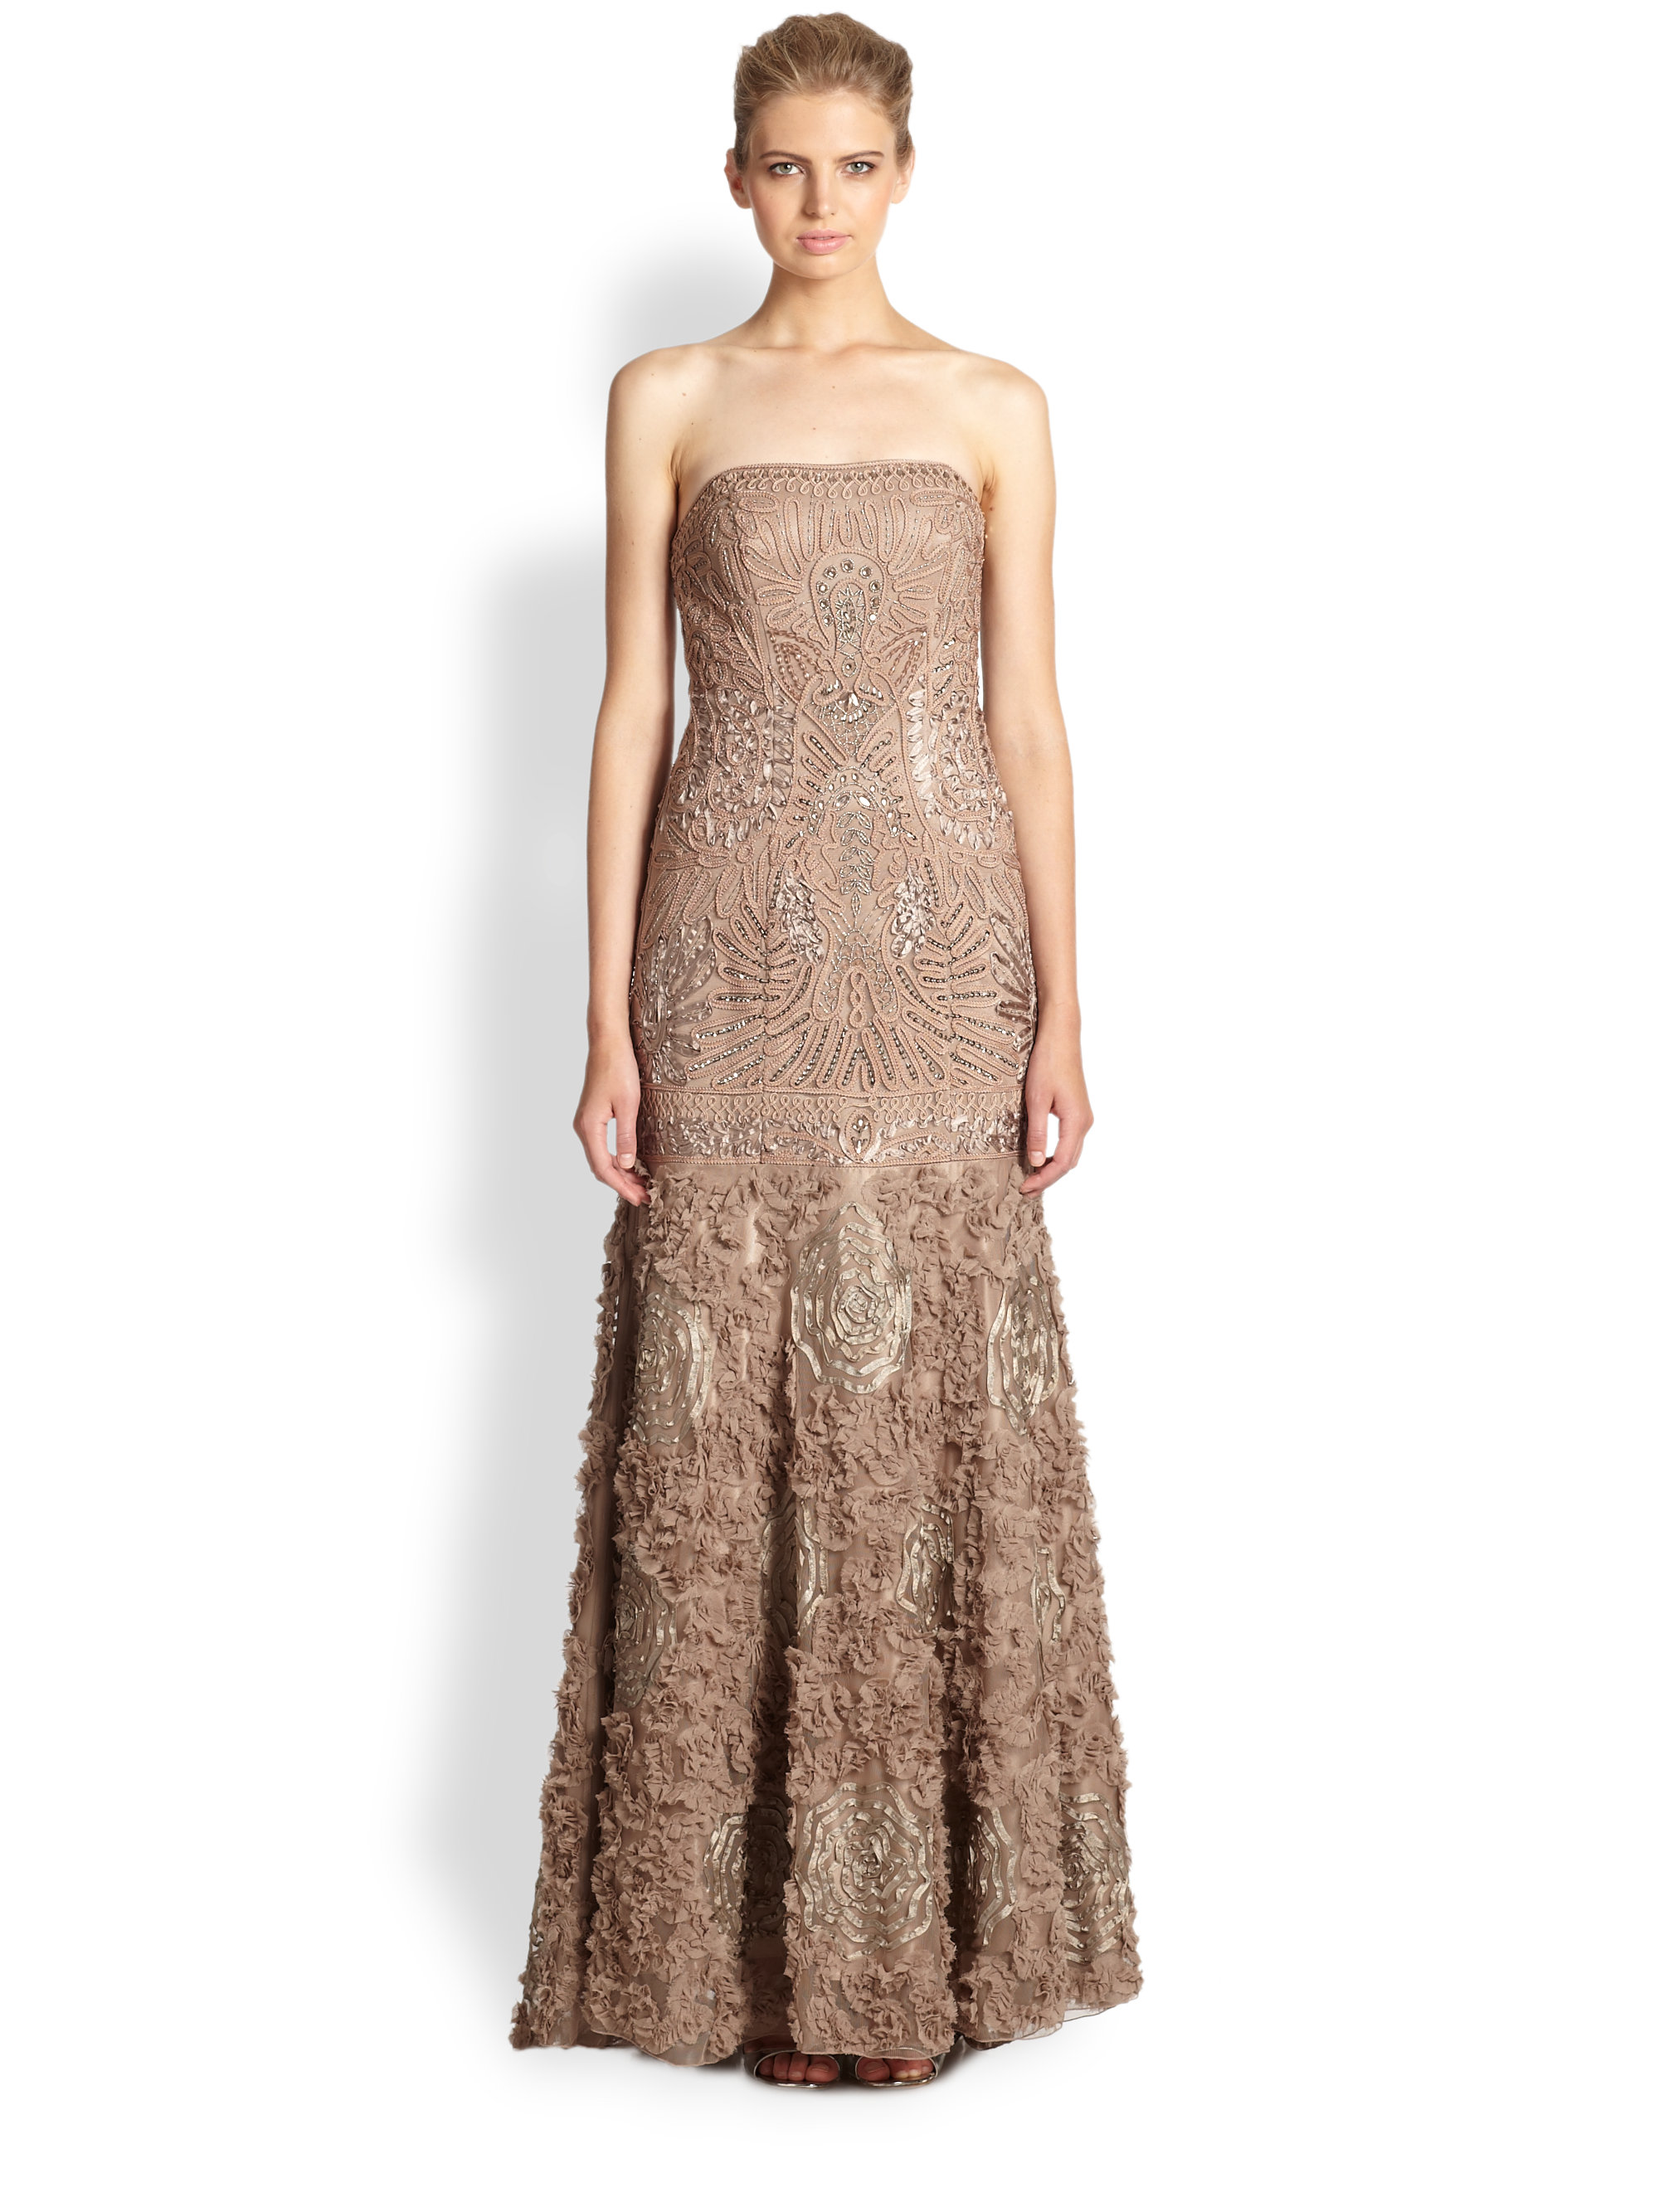 Sue wong Passimenterie Strapless Gown in Natural  Lyst